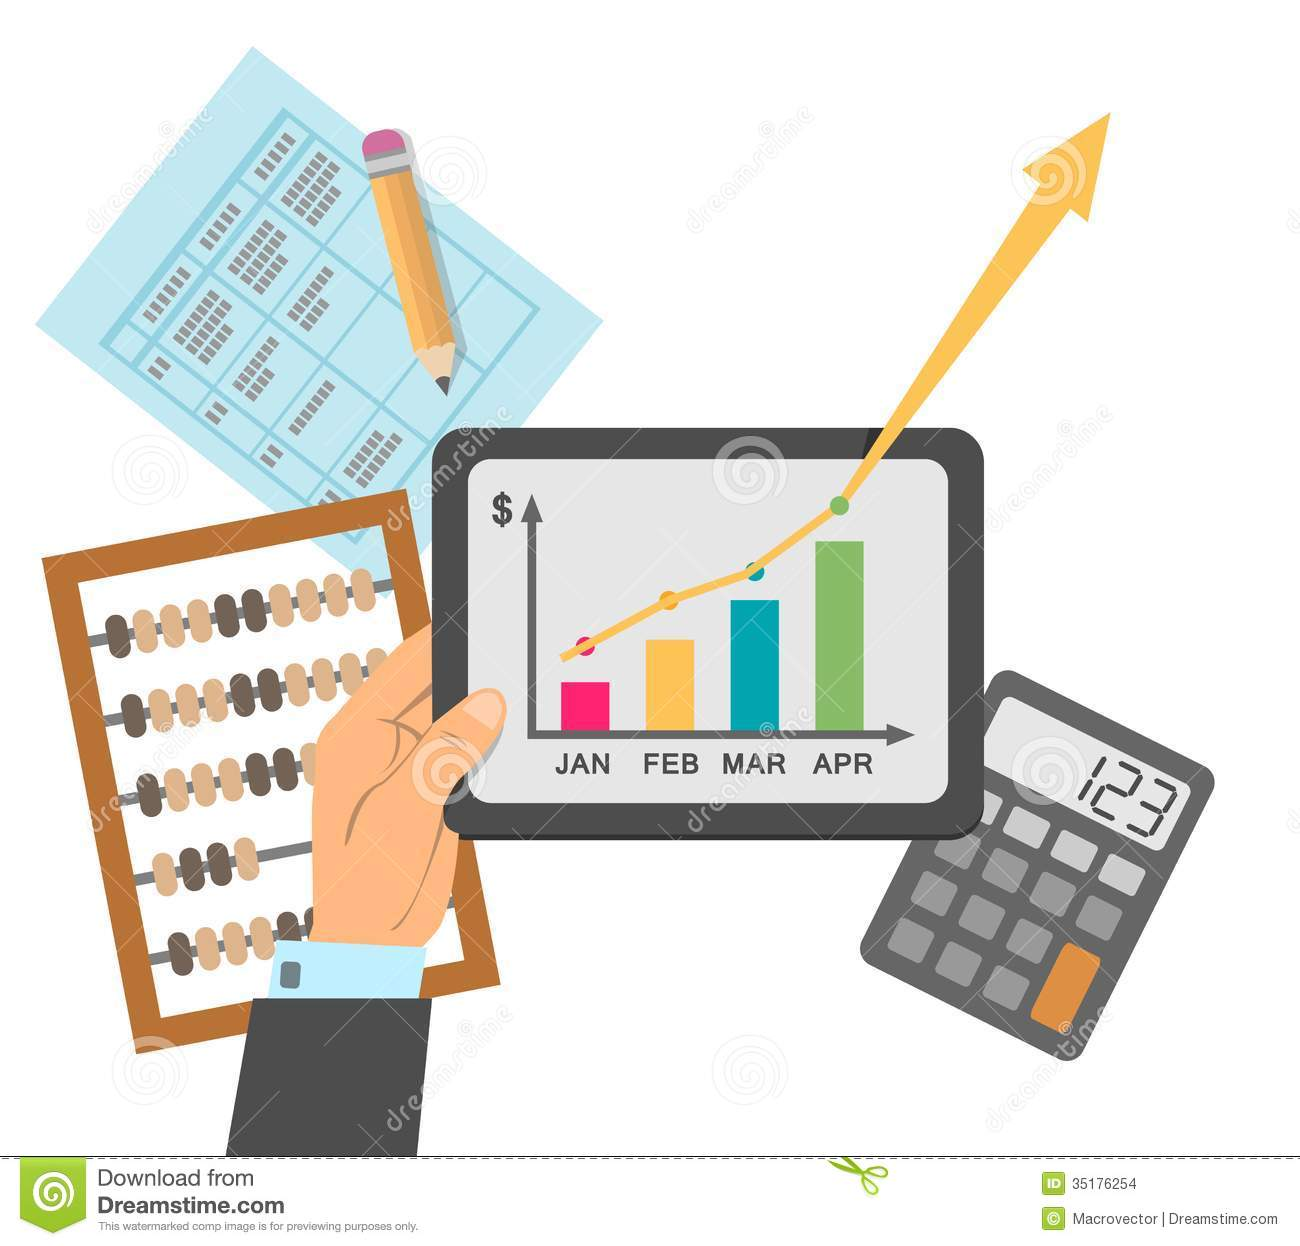 business plan report Plan for business intelligence plan reports plan reports plan reports determine business data and business intelligence needs plan web parts for reports plan reports for the report center site plan the reports library.